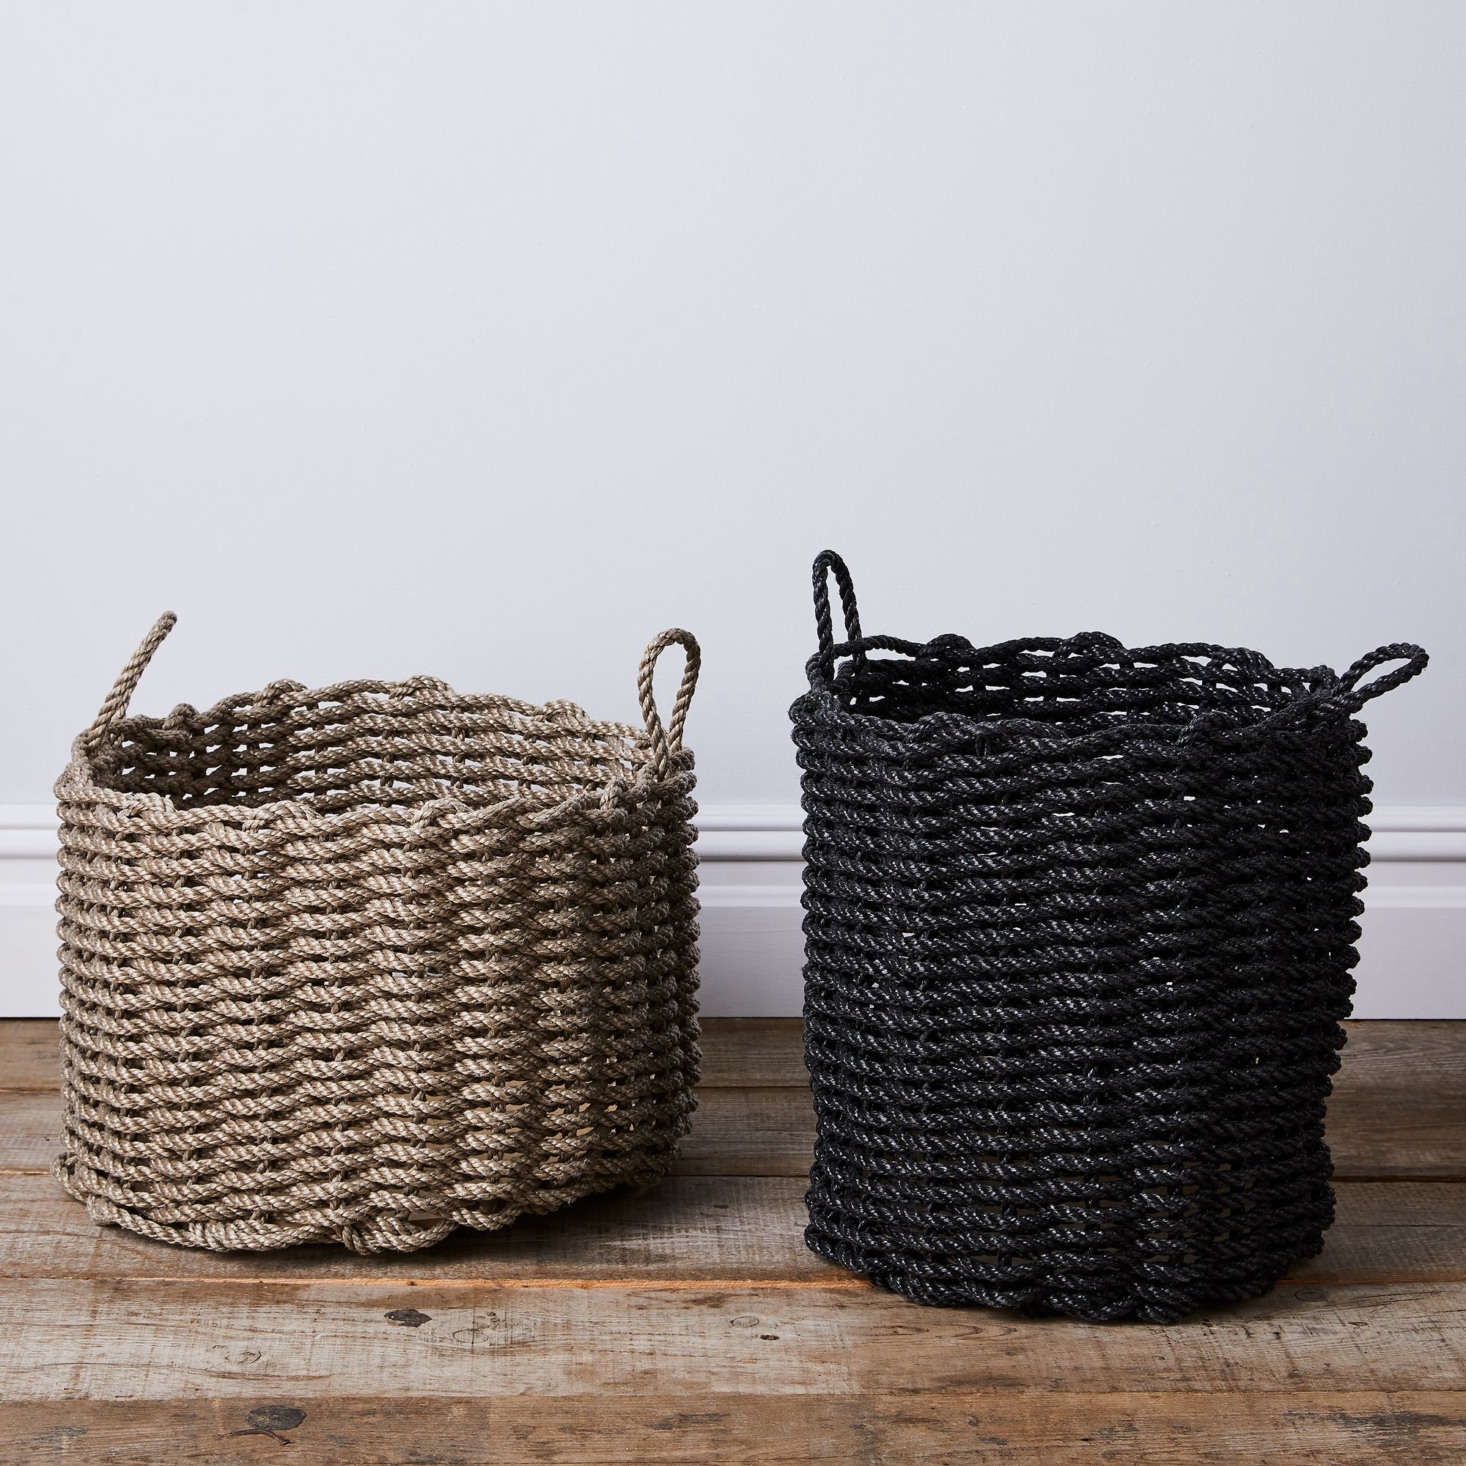 These sturdy, tough, and surprisingly chic baskets can be used indoors or out. See Made in Maine: Rugged Baskets and Doormats Woven From Nautical Rope.